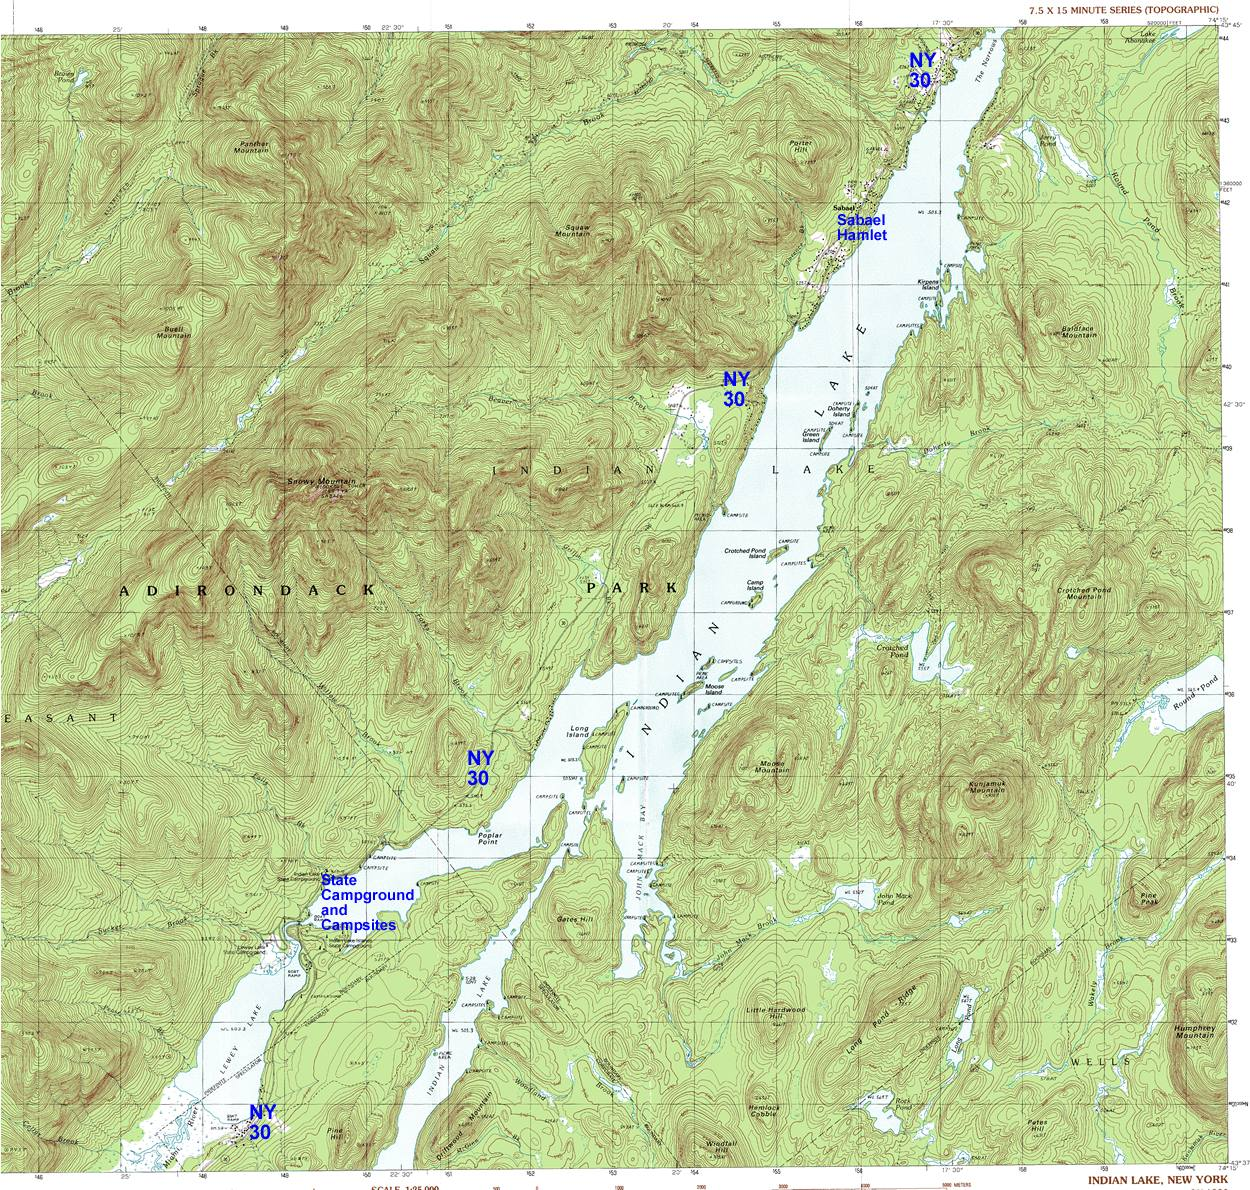 NY Route 30: The Adirondack Trail: Indian Lake, Sabael Area ... on fontainebleau state park campsite map, pontiac lake recreation area campground map, pinckney recreation area campground map, holly recreation area campground map, indian lake ohio map, smith mountain lake state park campground map,